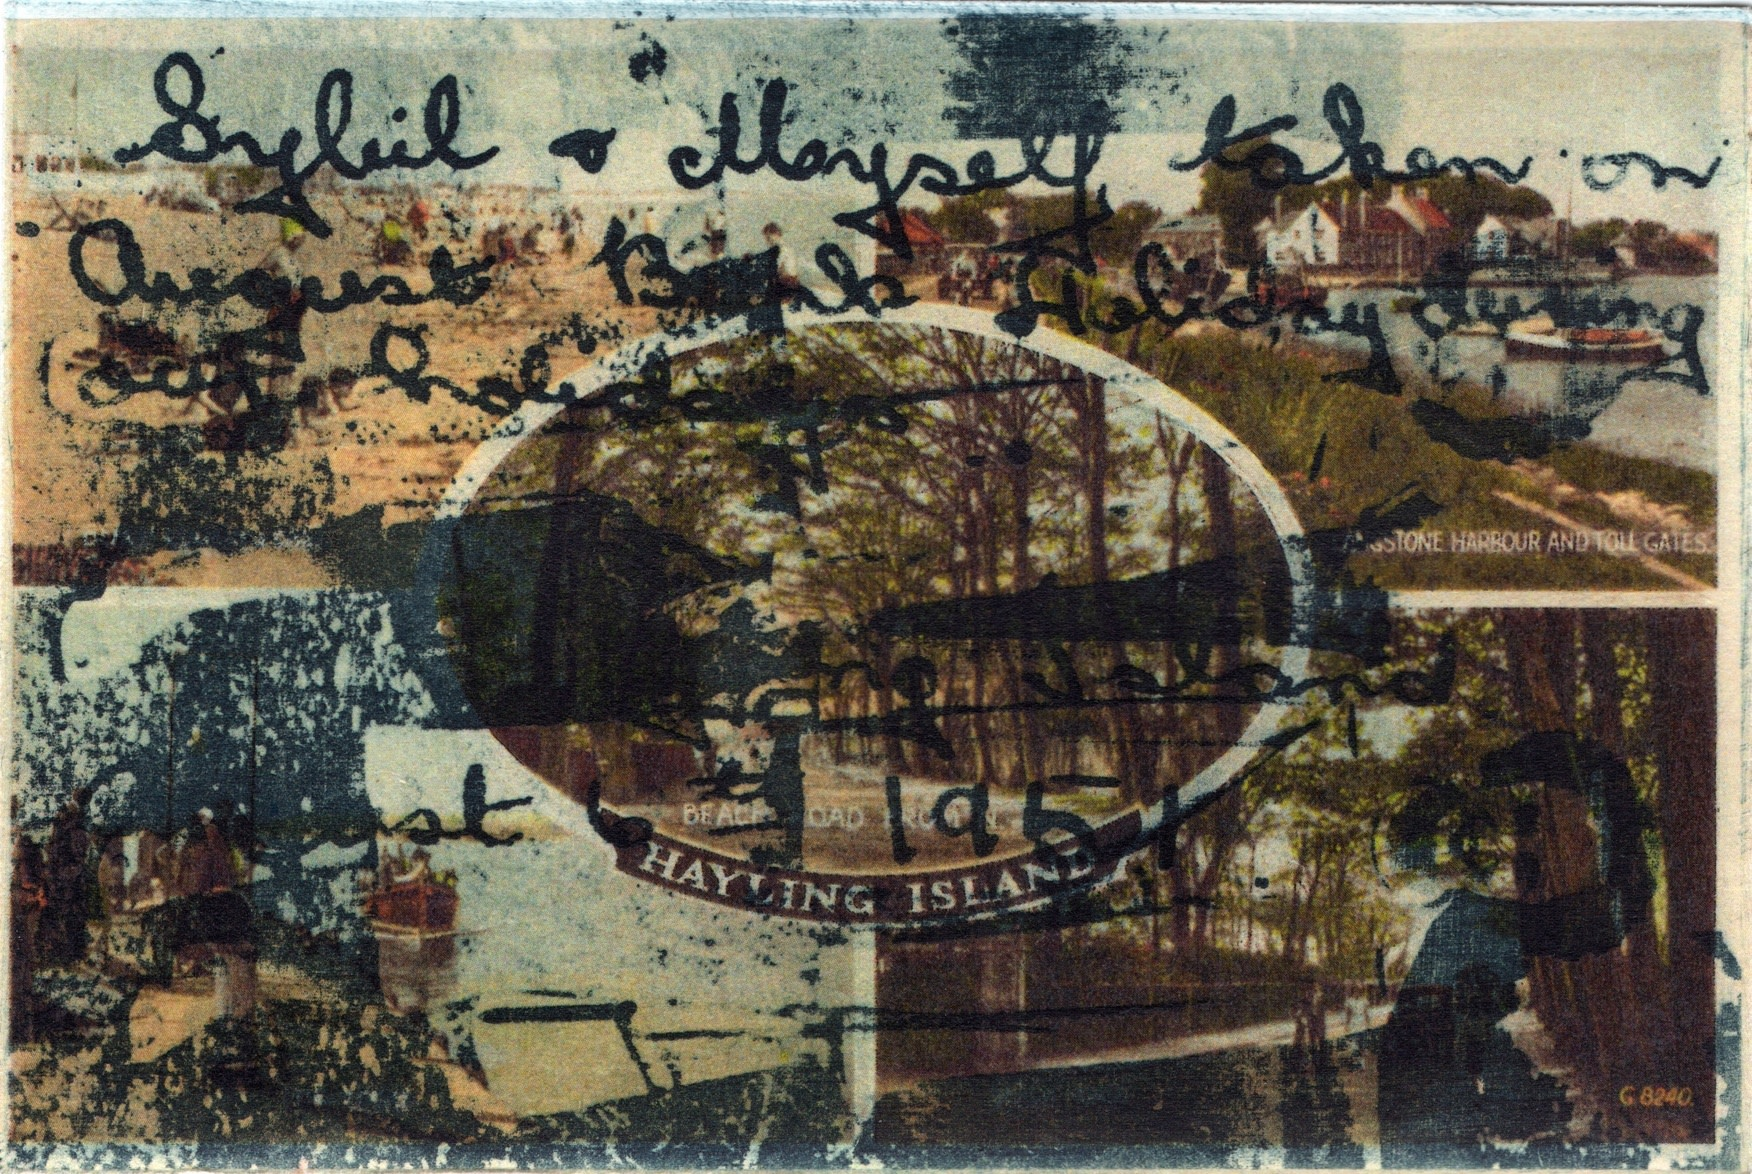 """<span class=""""link fancybox-details-link""""><a href=""""/exhibitions/17/works/image_standalone744/"""">View Detail Page</a></span><p><strong>Jennifer Merrell</strong></p><p>Sybil and Myself - August Bank Holiday</p><p>etching on digital print chine collee, ed of 5</p><p>20 x 25cm</p><p>£300 framed</p><p>£175 unframed</p>"""